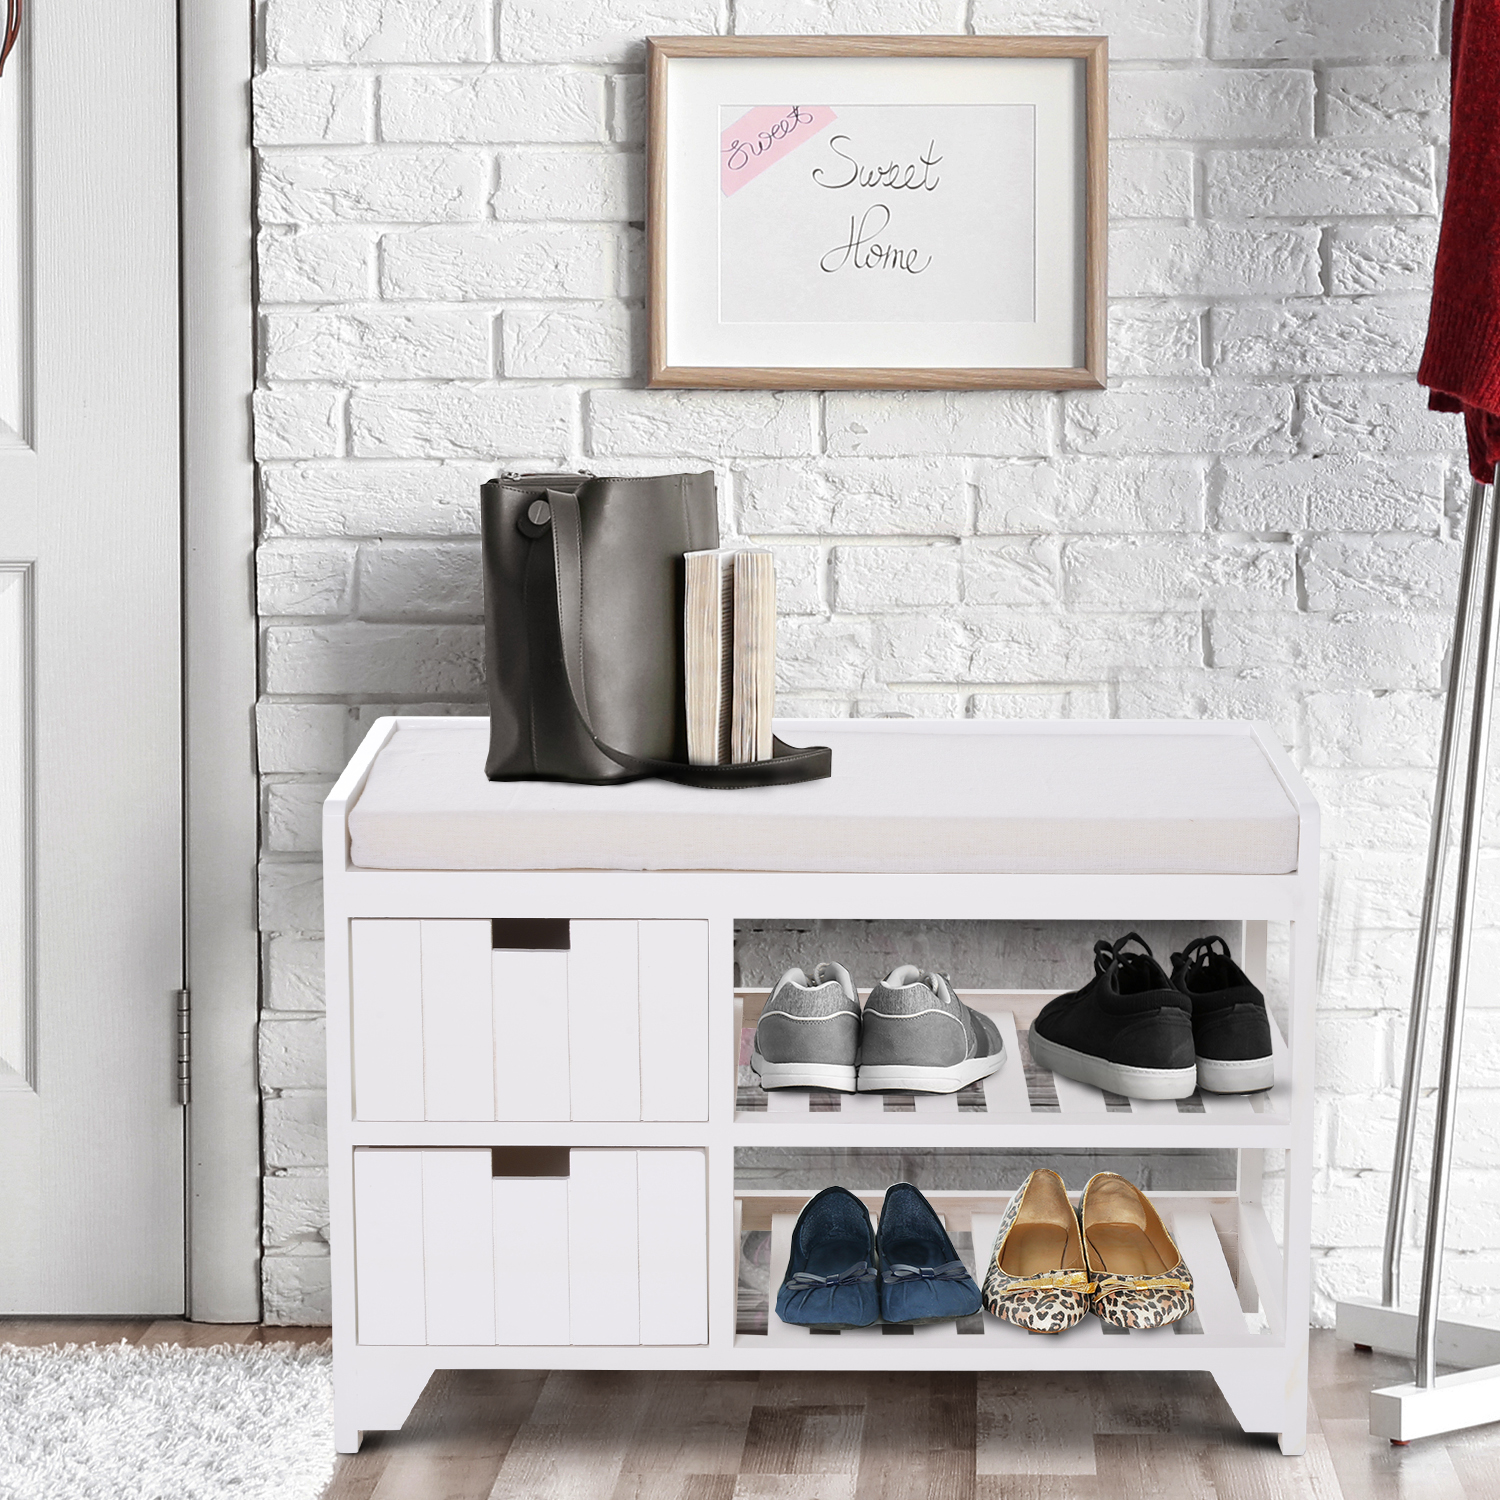 Picture of: Rustic Country Hall Entryway Small Wooden Shelf Bench Pull Out Drawers Slatted 712190179847 Ebay